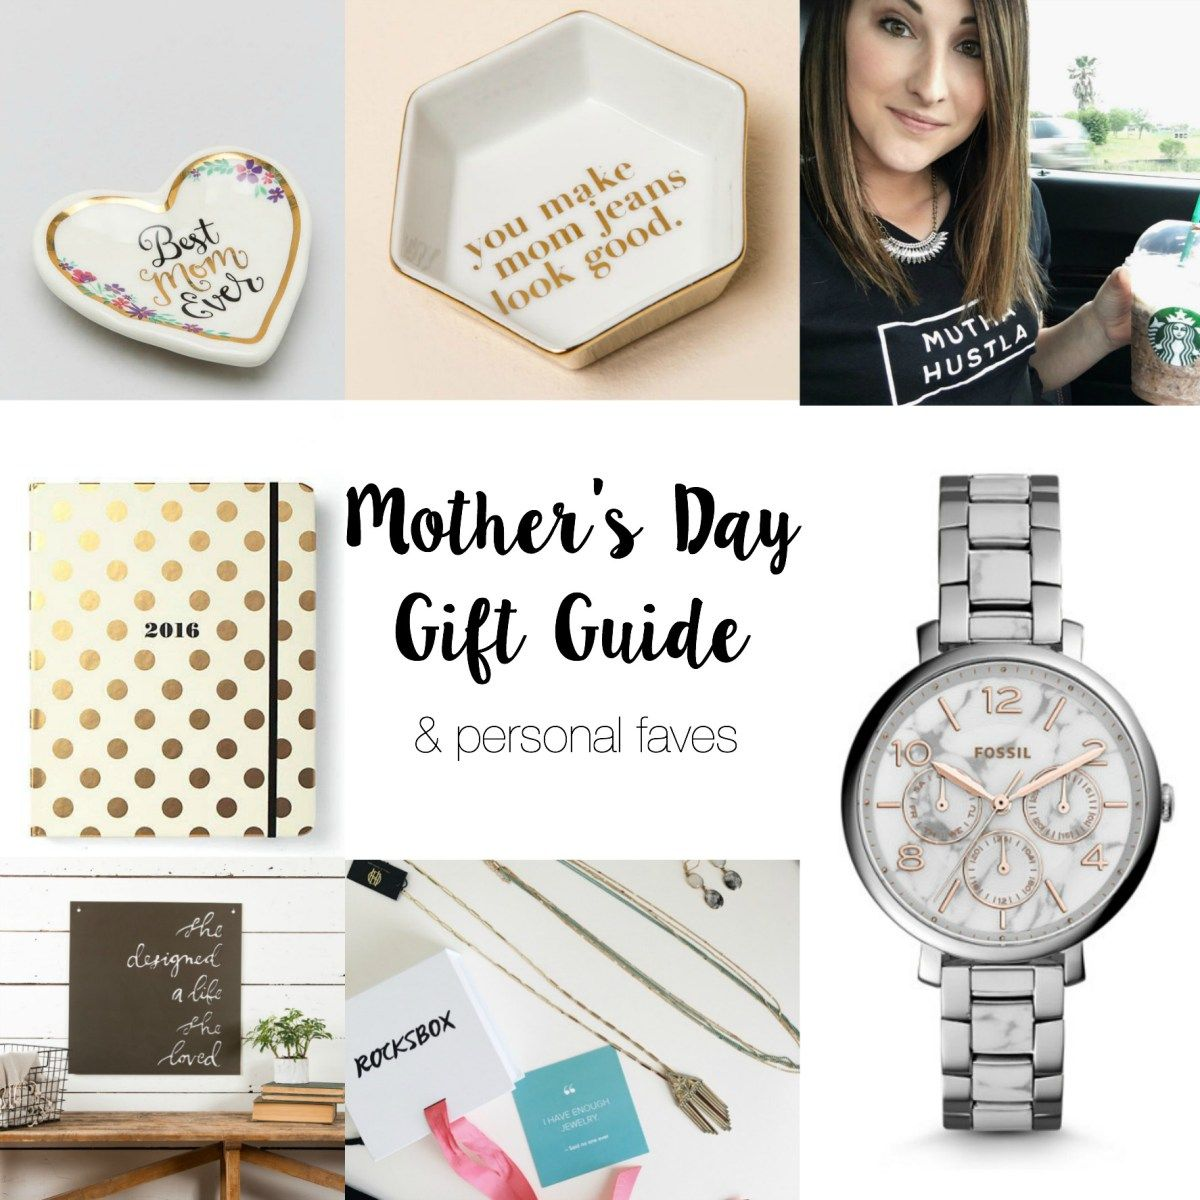 Mother's Day Gift Guide|Personal Faves